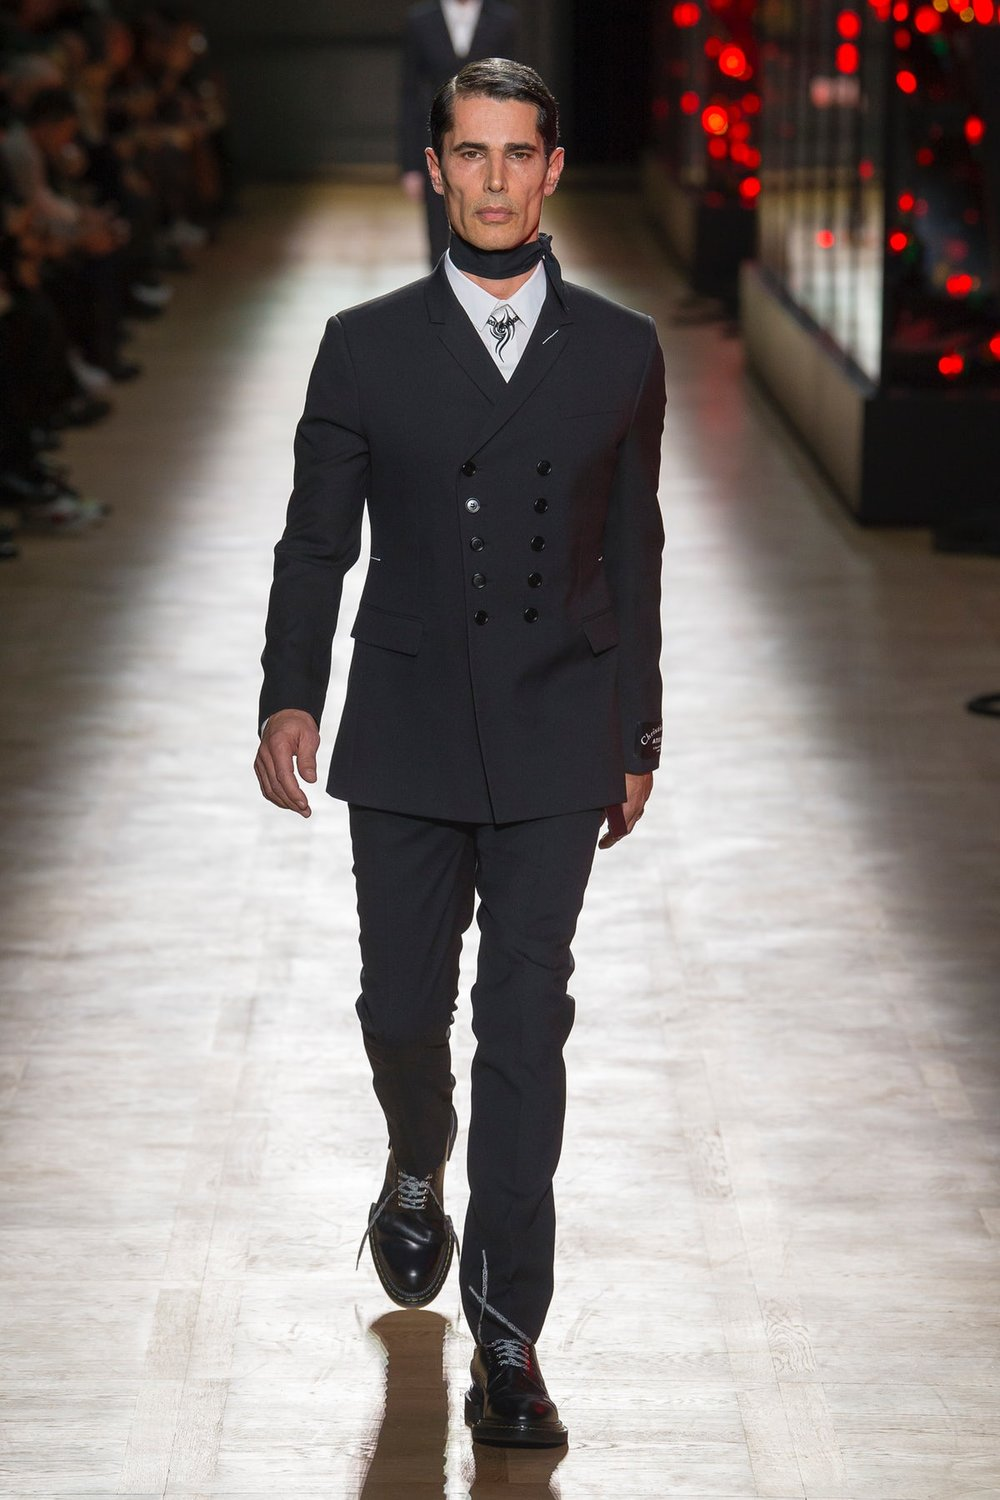 dior_homme_look_1_menswear_autumn_2018.jpeg